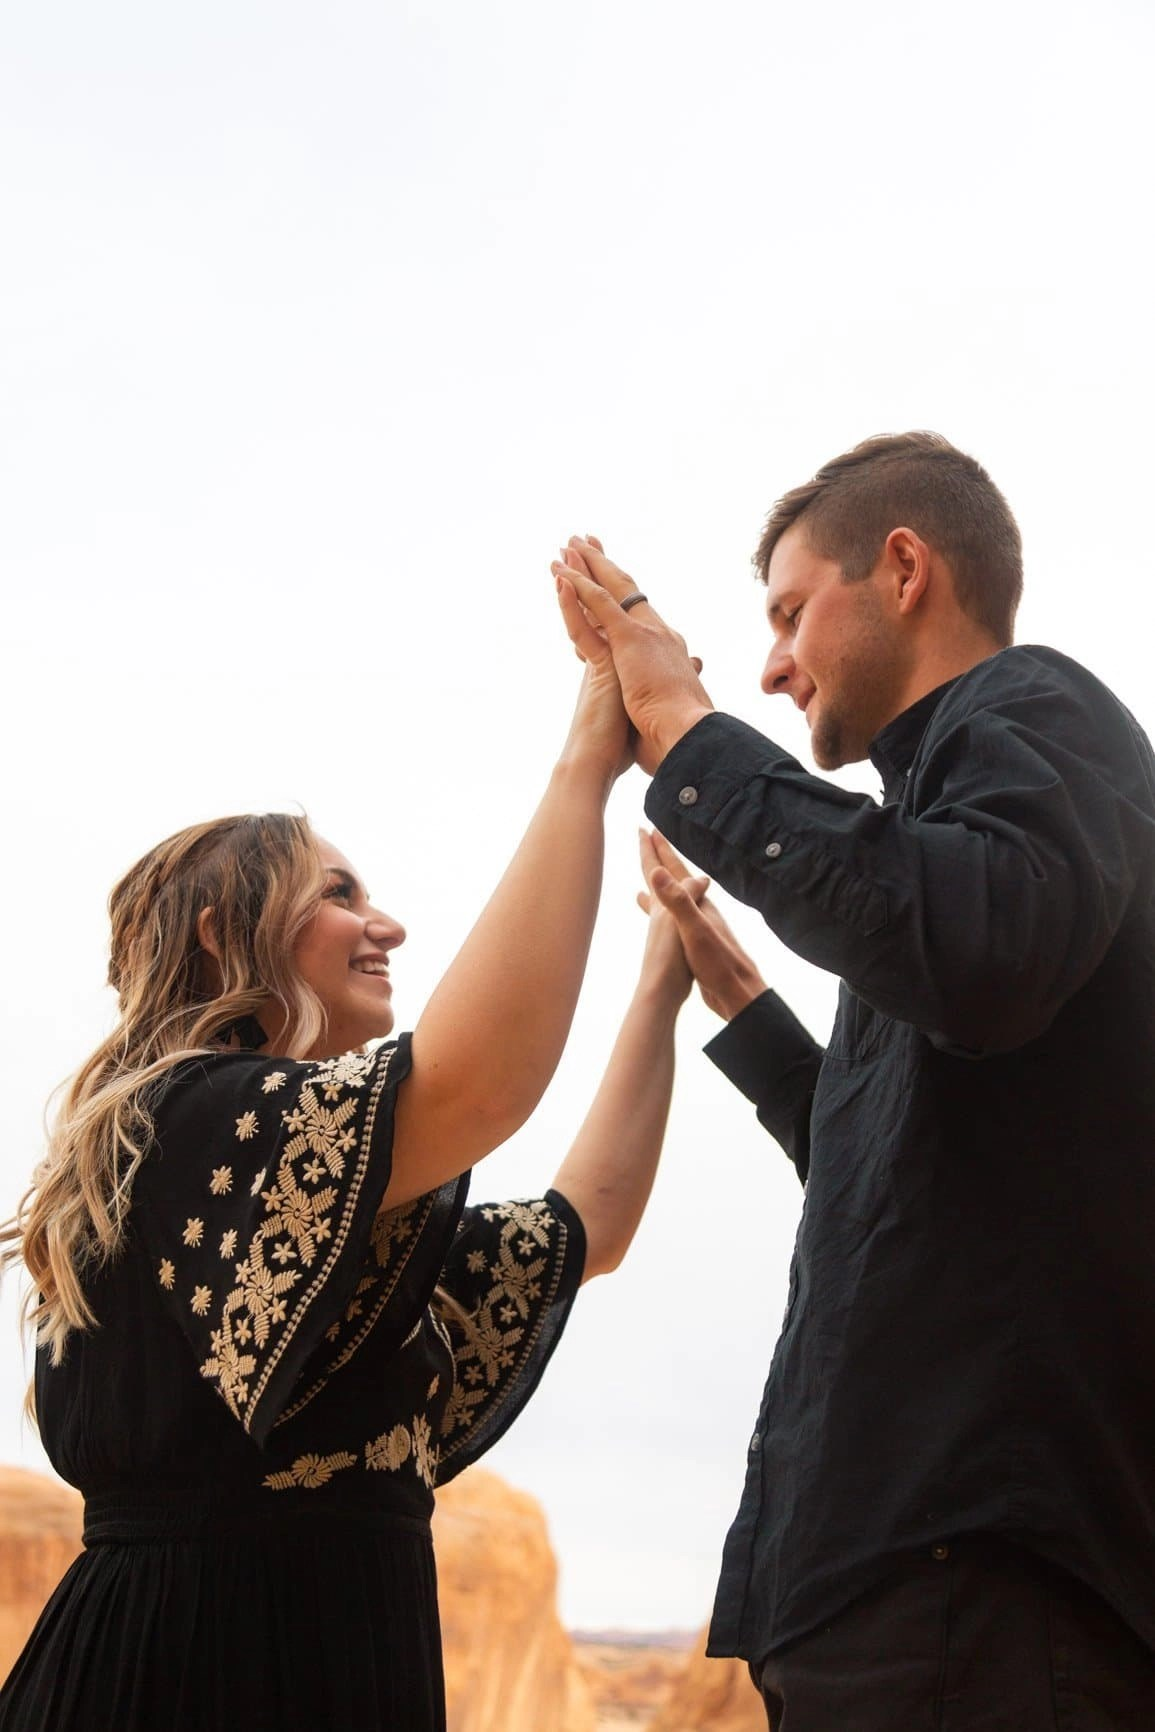 a couple form Utah smiles and presses palms while taking a break to connect